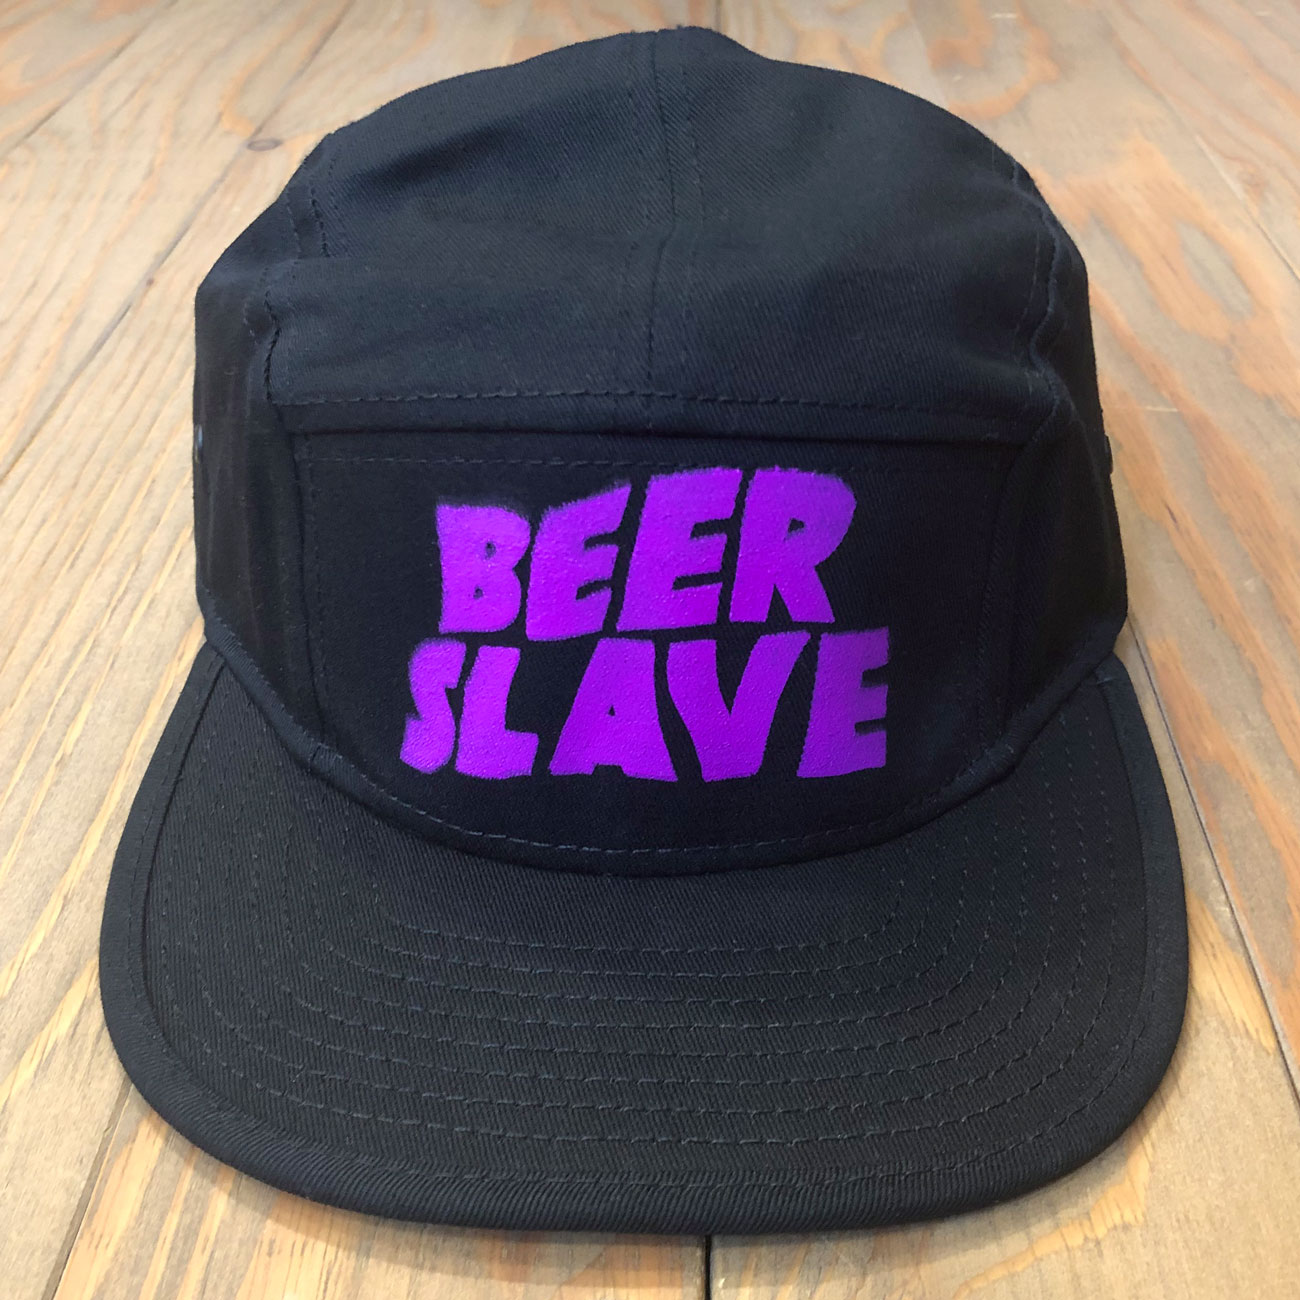 BEER SLAVE BEER SABBATH CAMP CAP BLACK